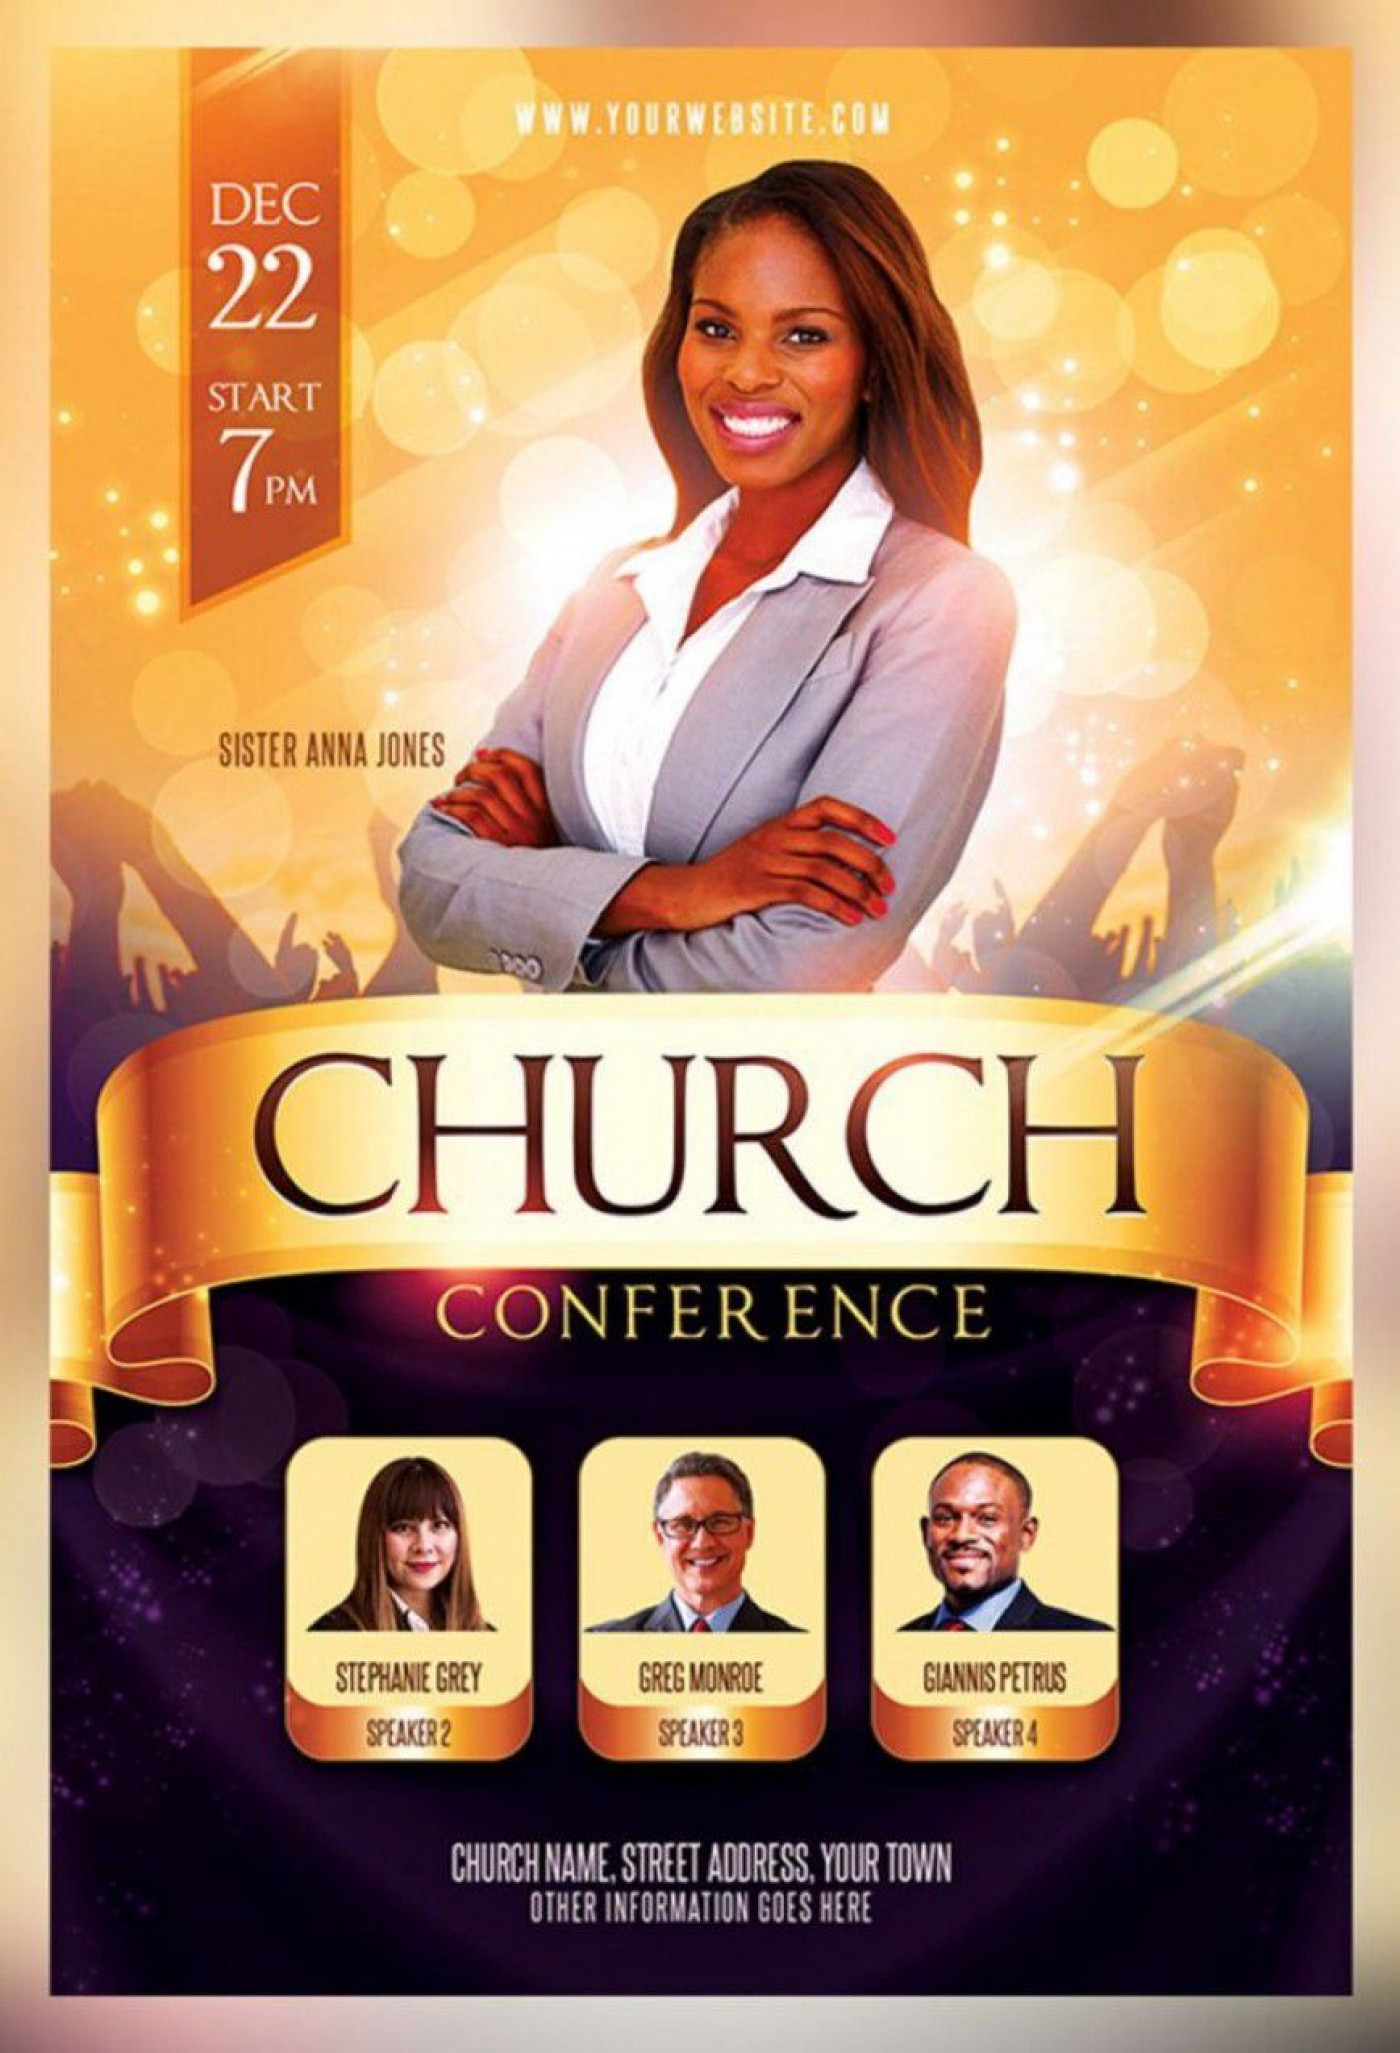 002 Beautiful Church Flyer Template Free Printable Highest Clarity  Event1400